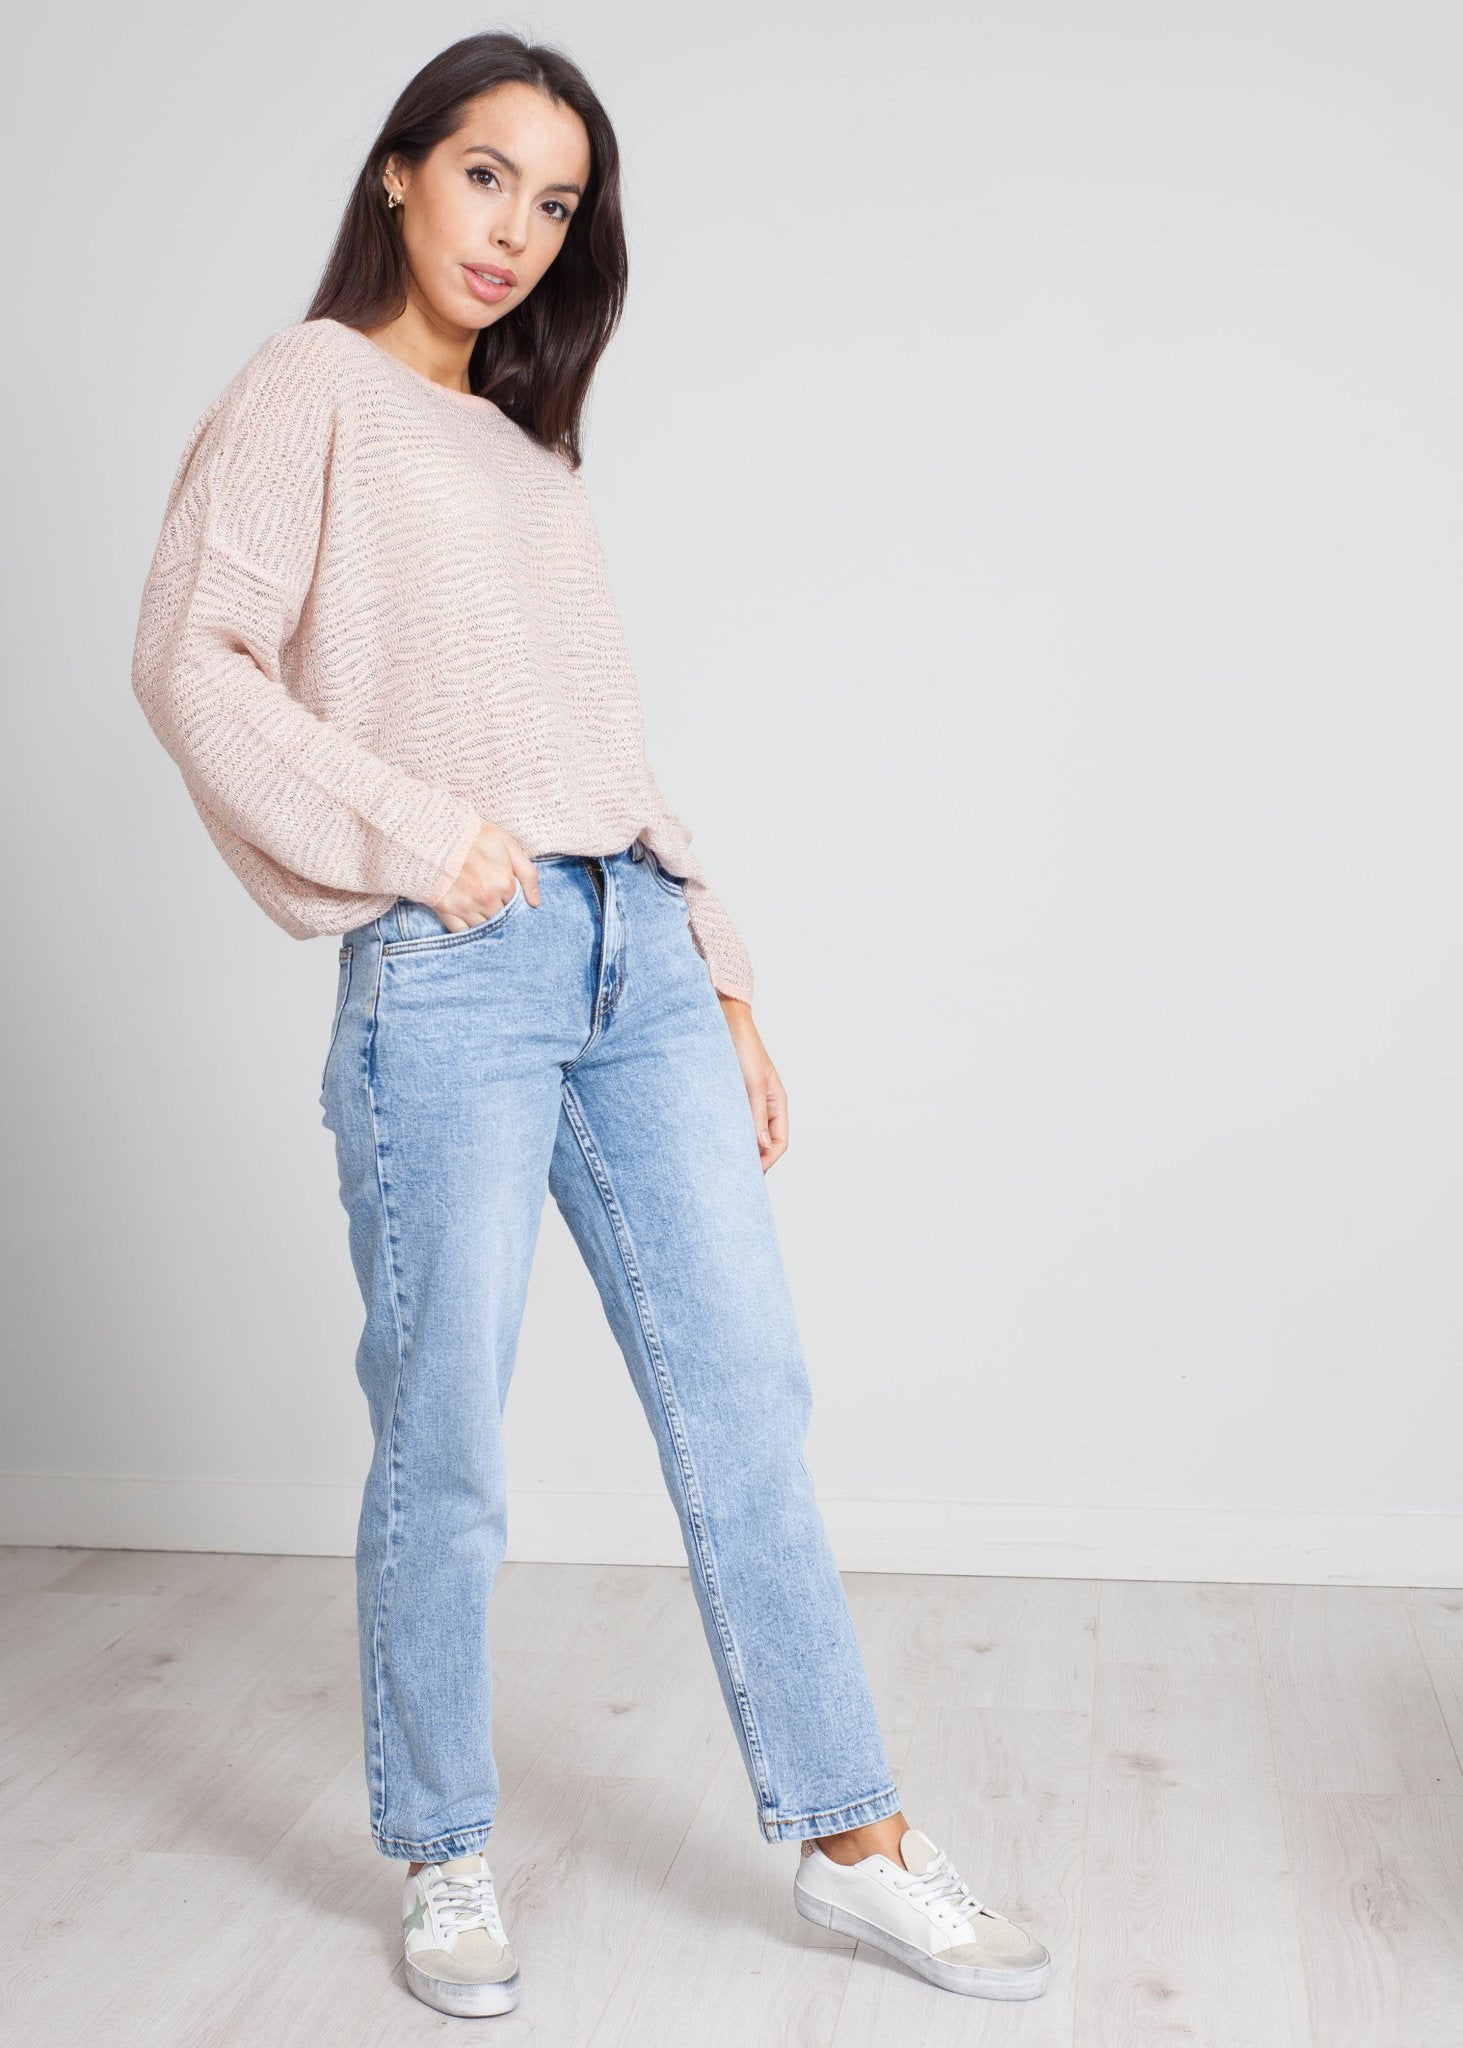 Priya Shimmer Knit In Rose - The Walk in Wardrobe